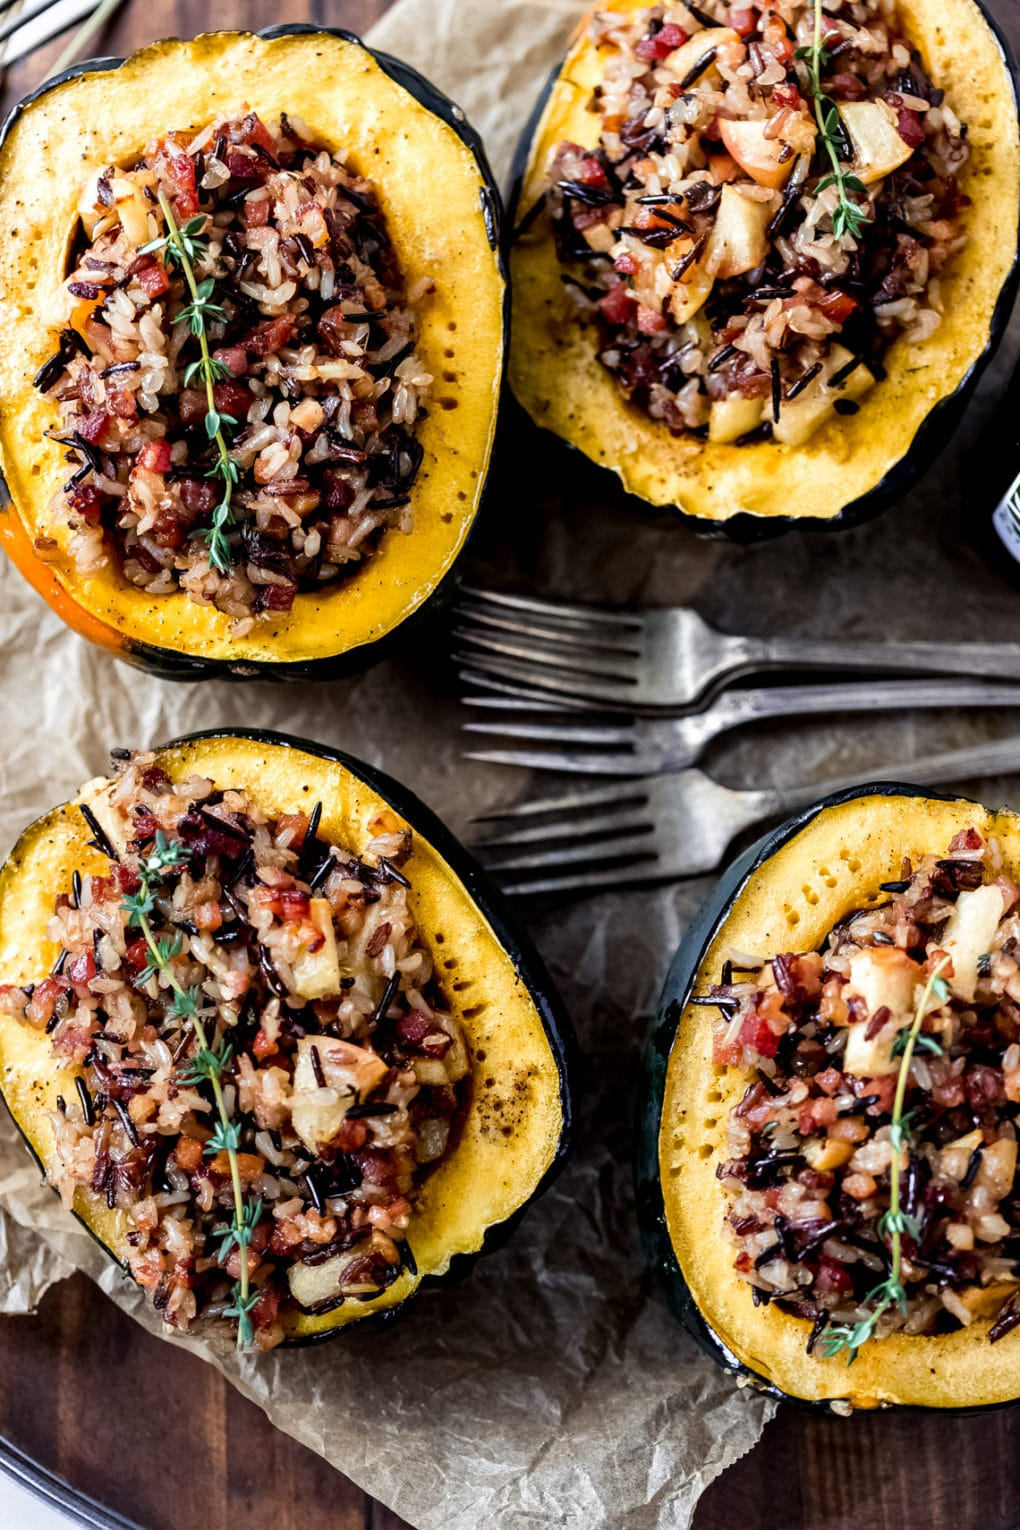 four stuffed acorn squash on a wooden serving try with four vintage forks